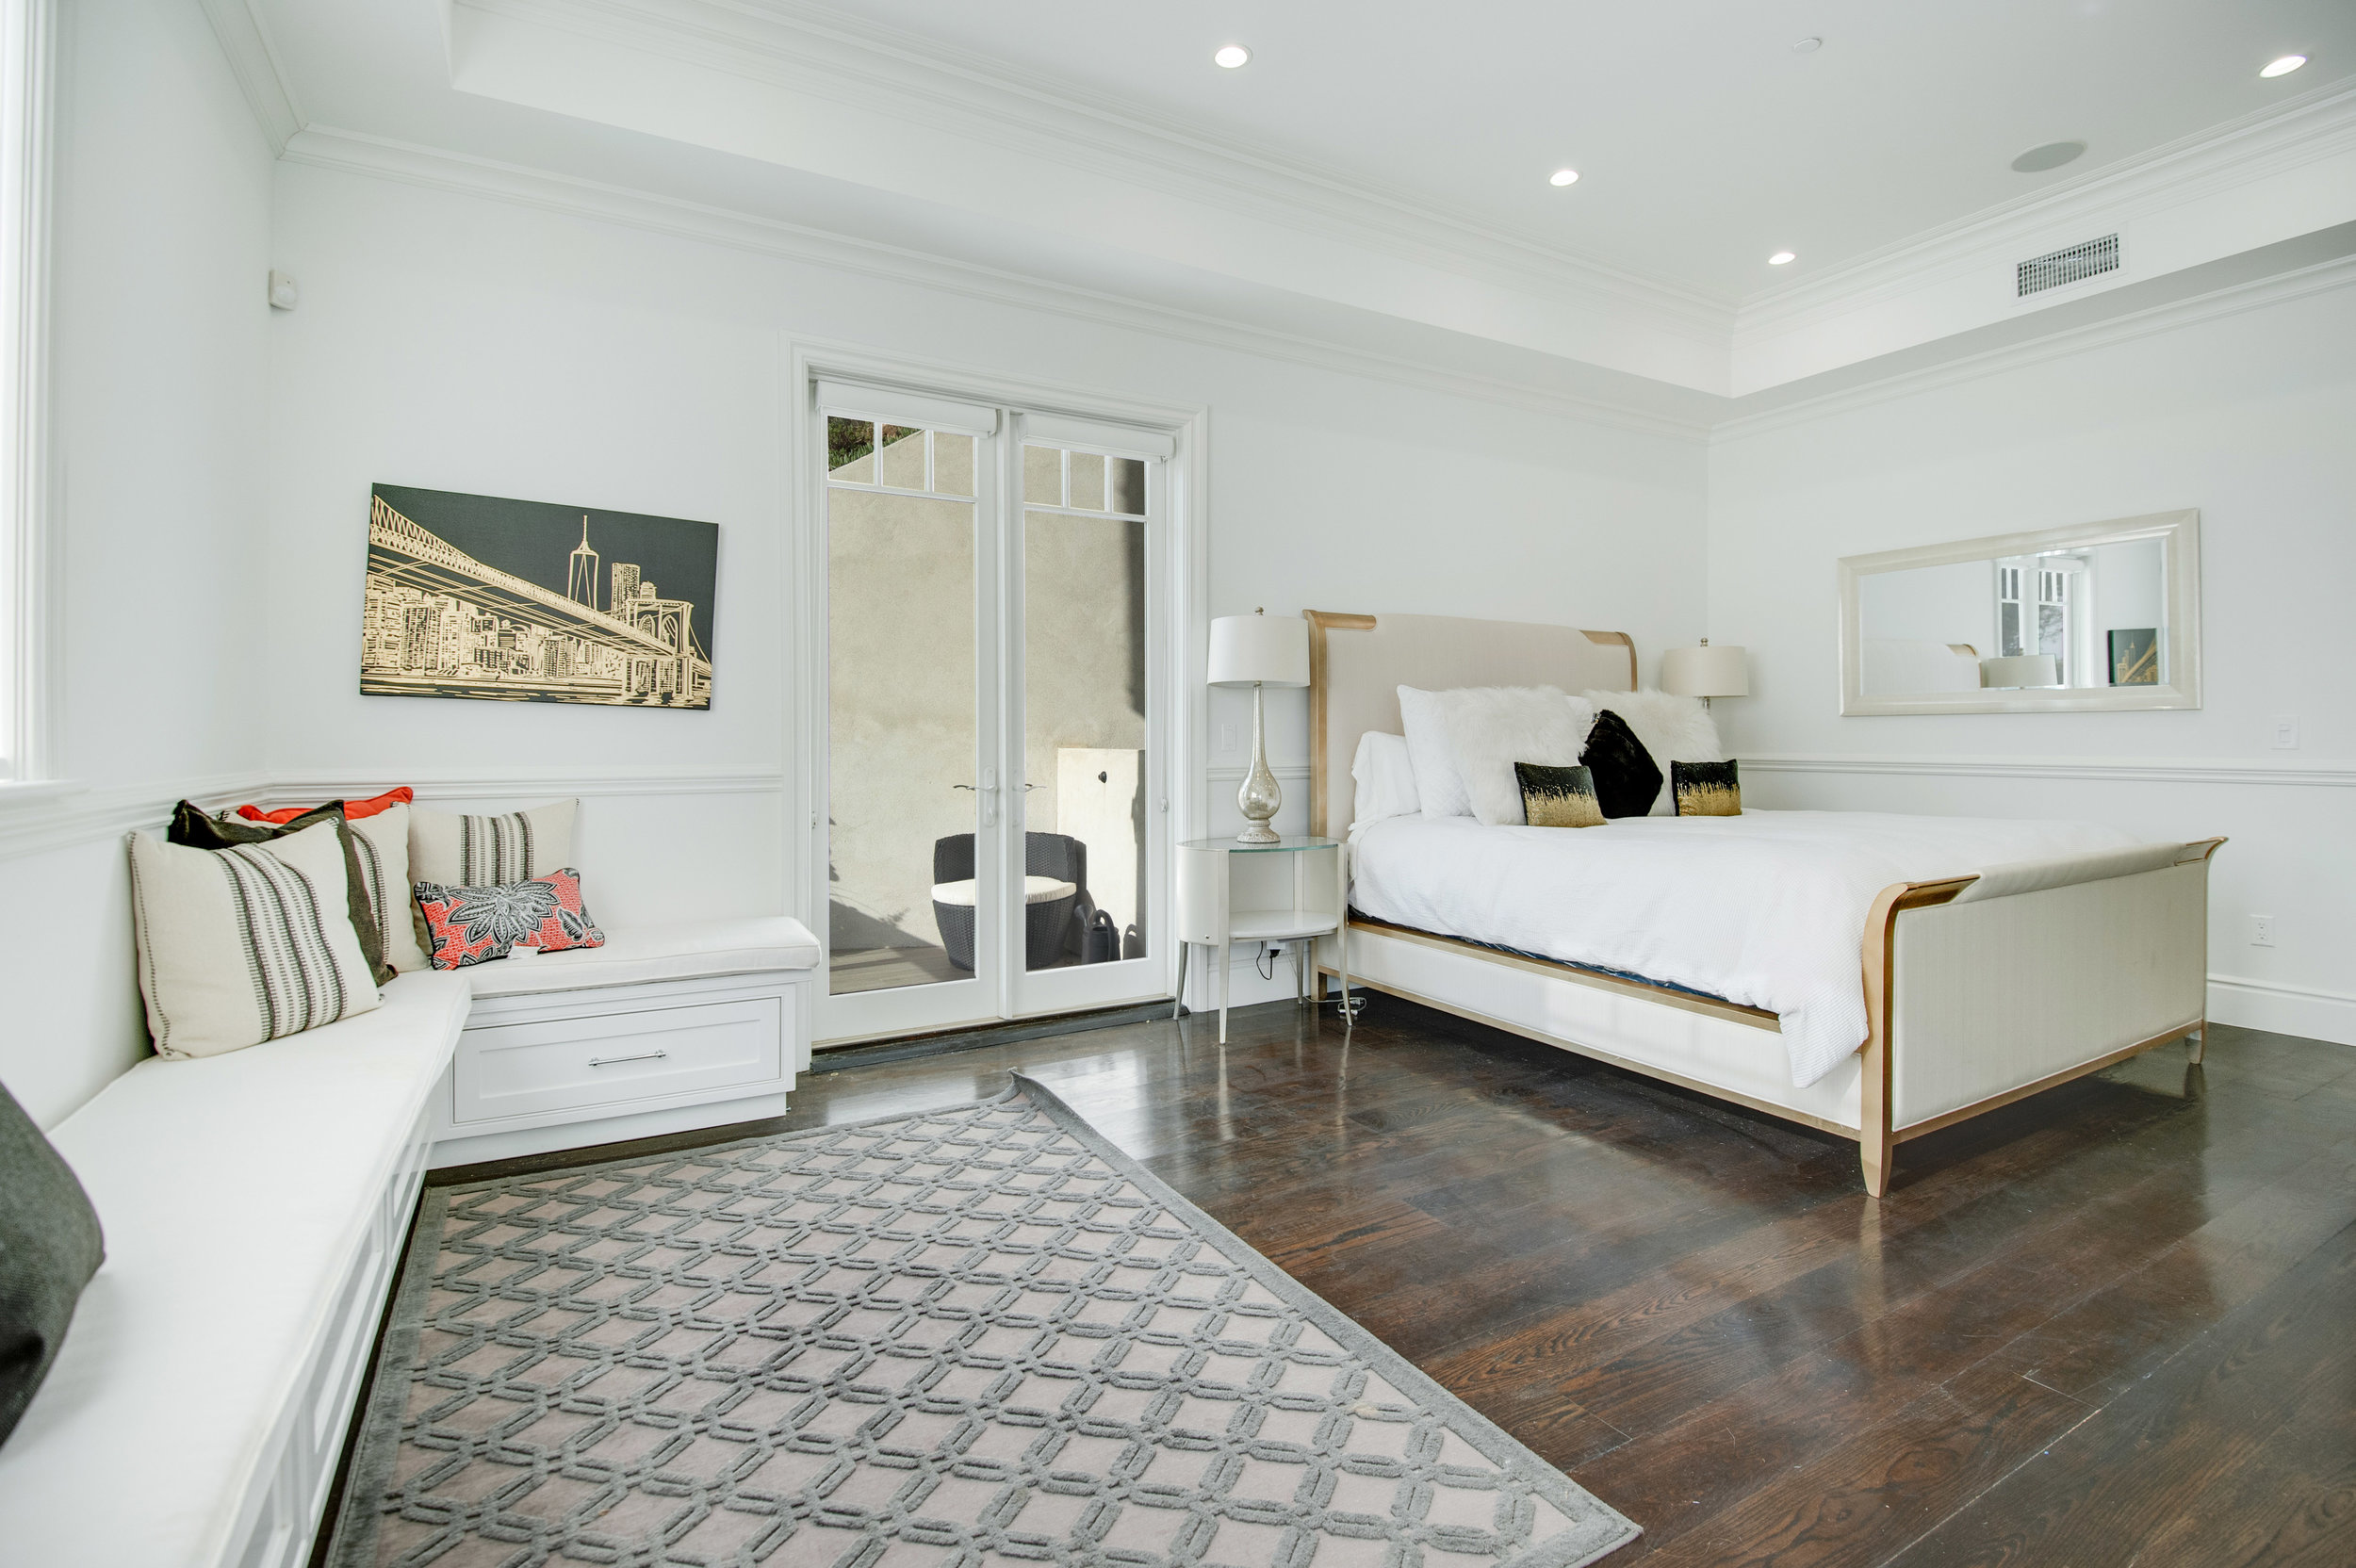 018 Bedroom 17819 Castellammare Drive Pacific Palisades For Sale Lease The Malibu Life Team Compass Luxury Real Estate.jpg